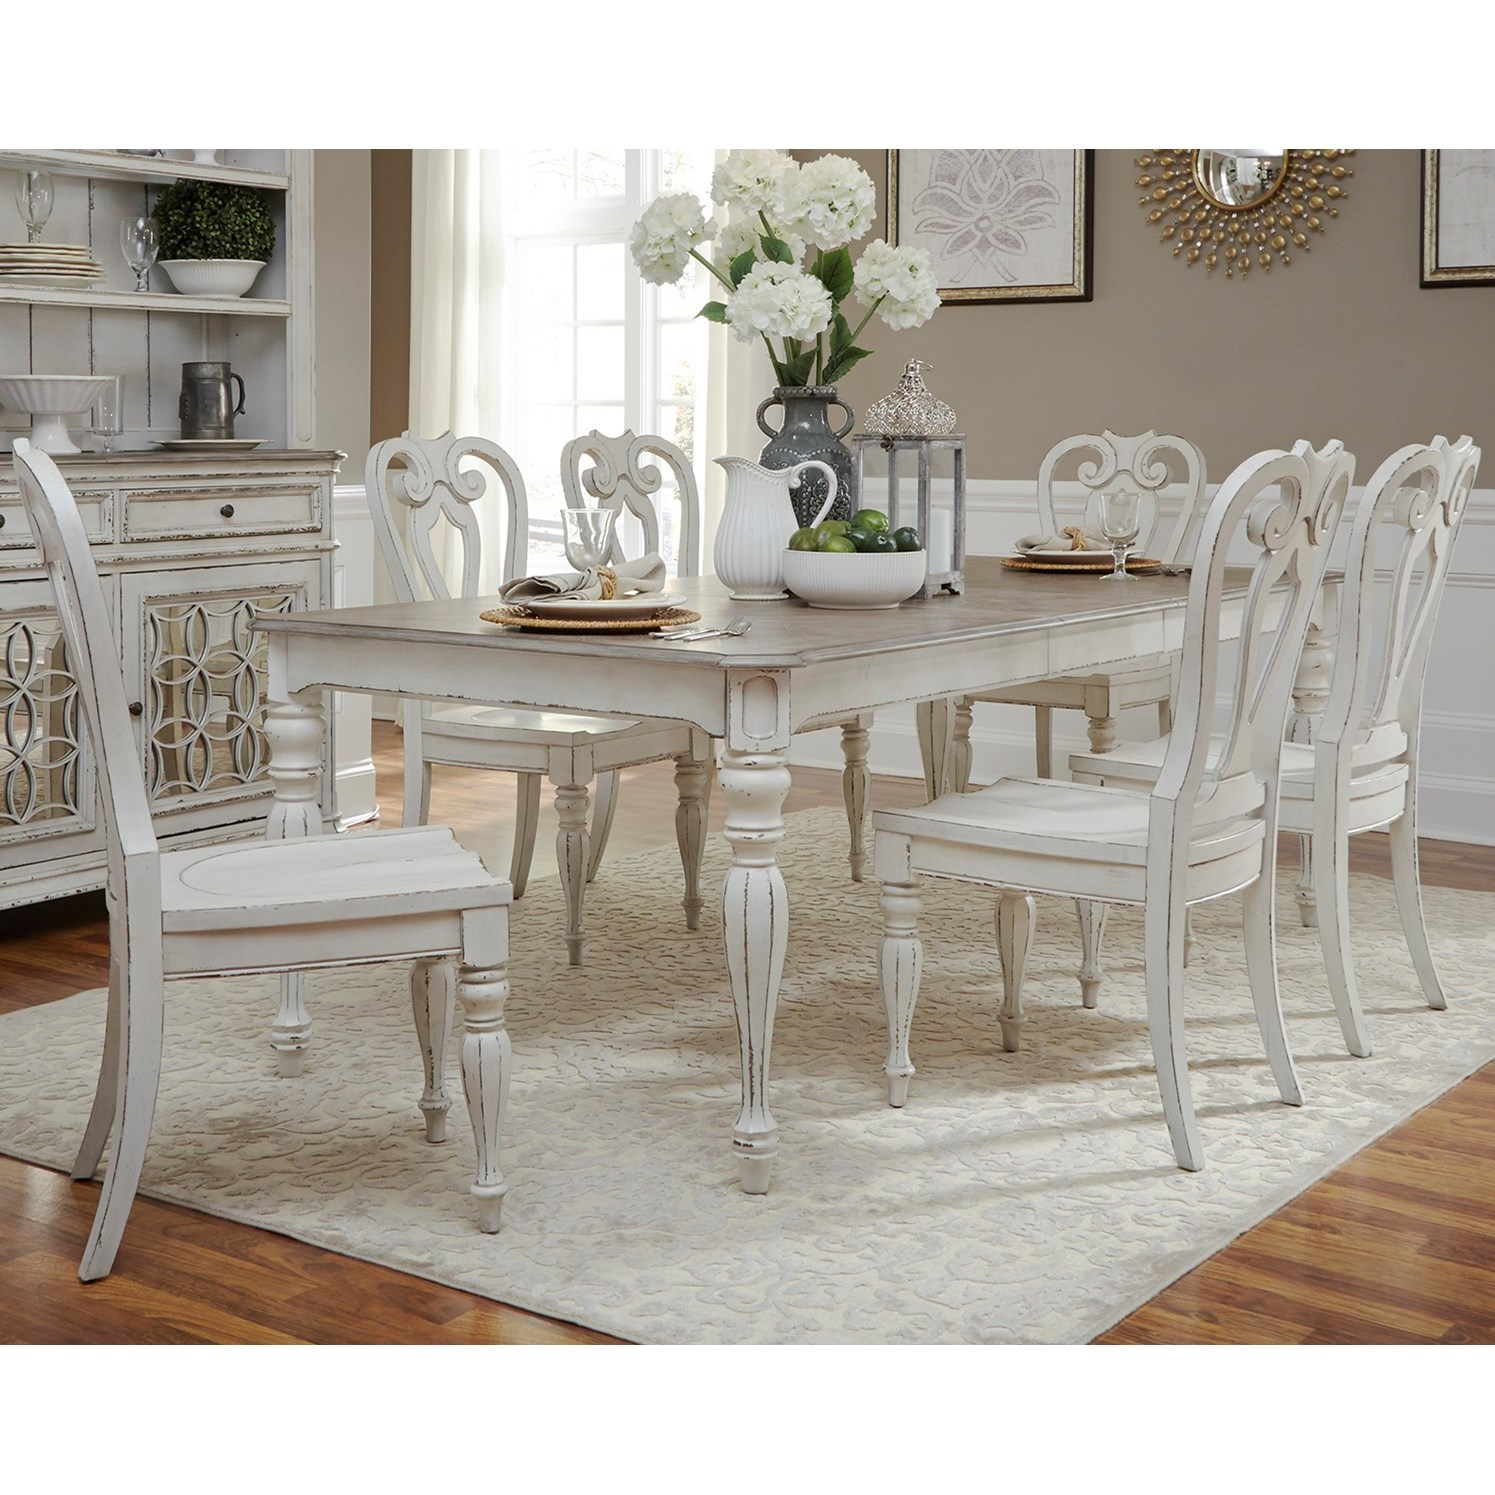 Magnolia Manor Dining Opt 7 Piece Rectangular Table Set  by Liberty Furniture at Northeast Factory Direct